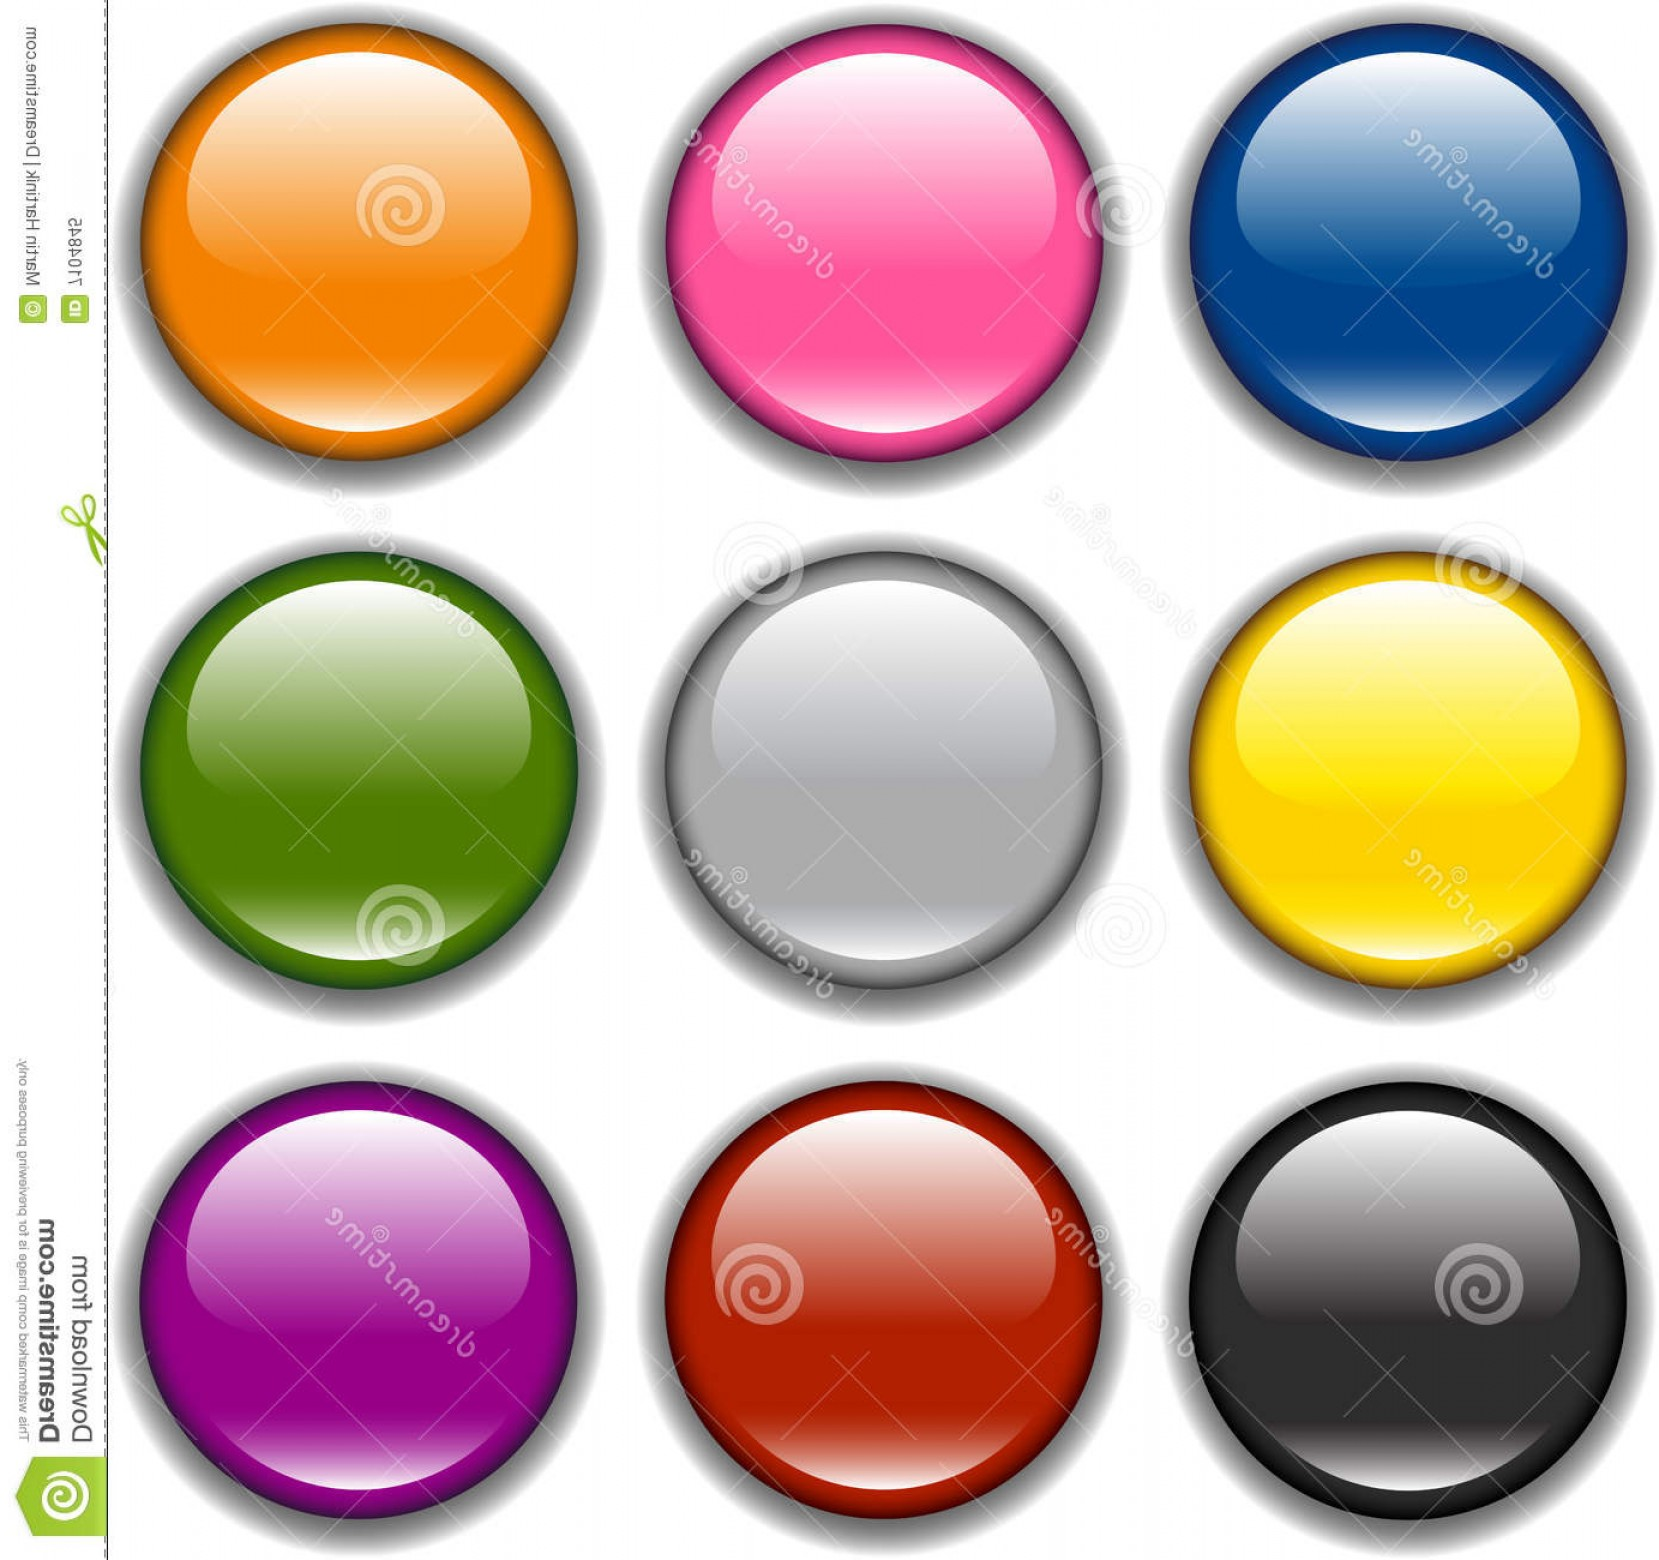 Button Icon Vector: Royalty Free Stock Photo Vector Button Icon Samples Image